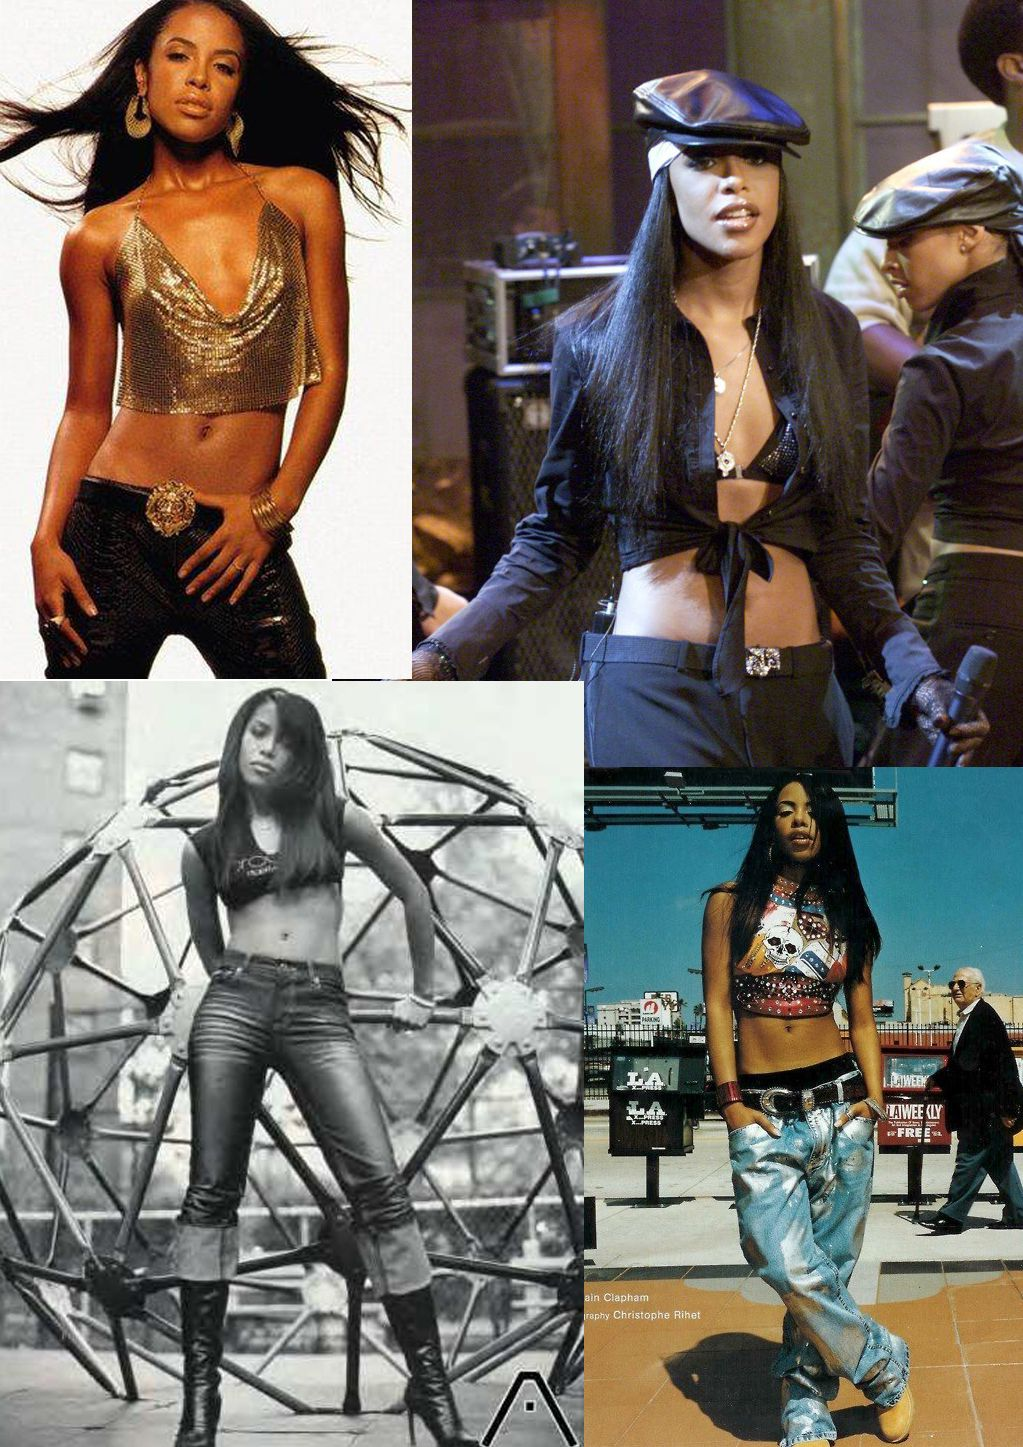 Top fashion trends of the 90s - Aaliyah 90s Fashion Aaliyah S Signature Style As She Got Older Crop Top With Pants